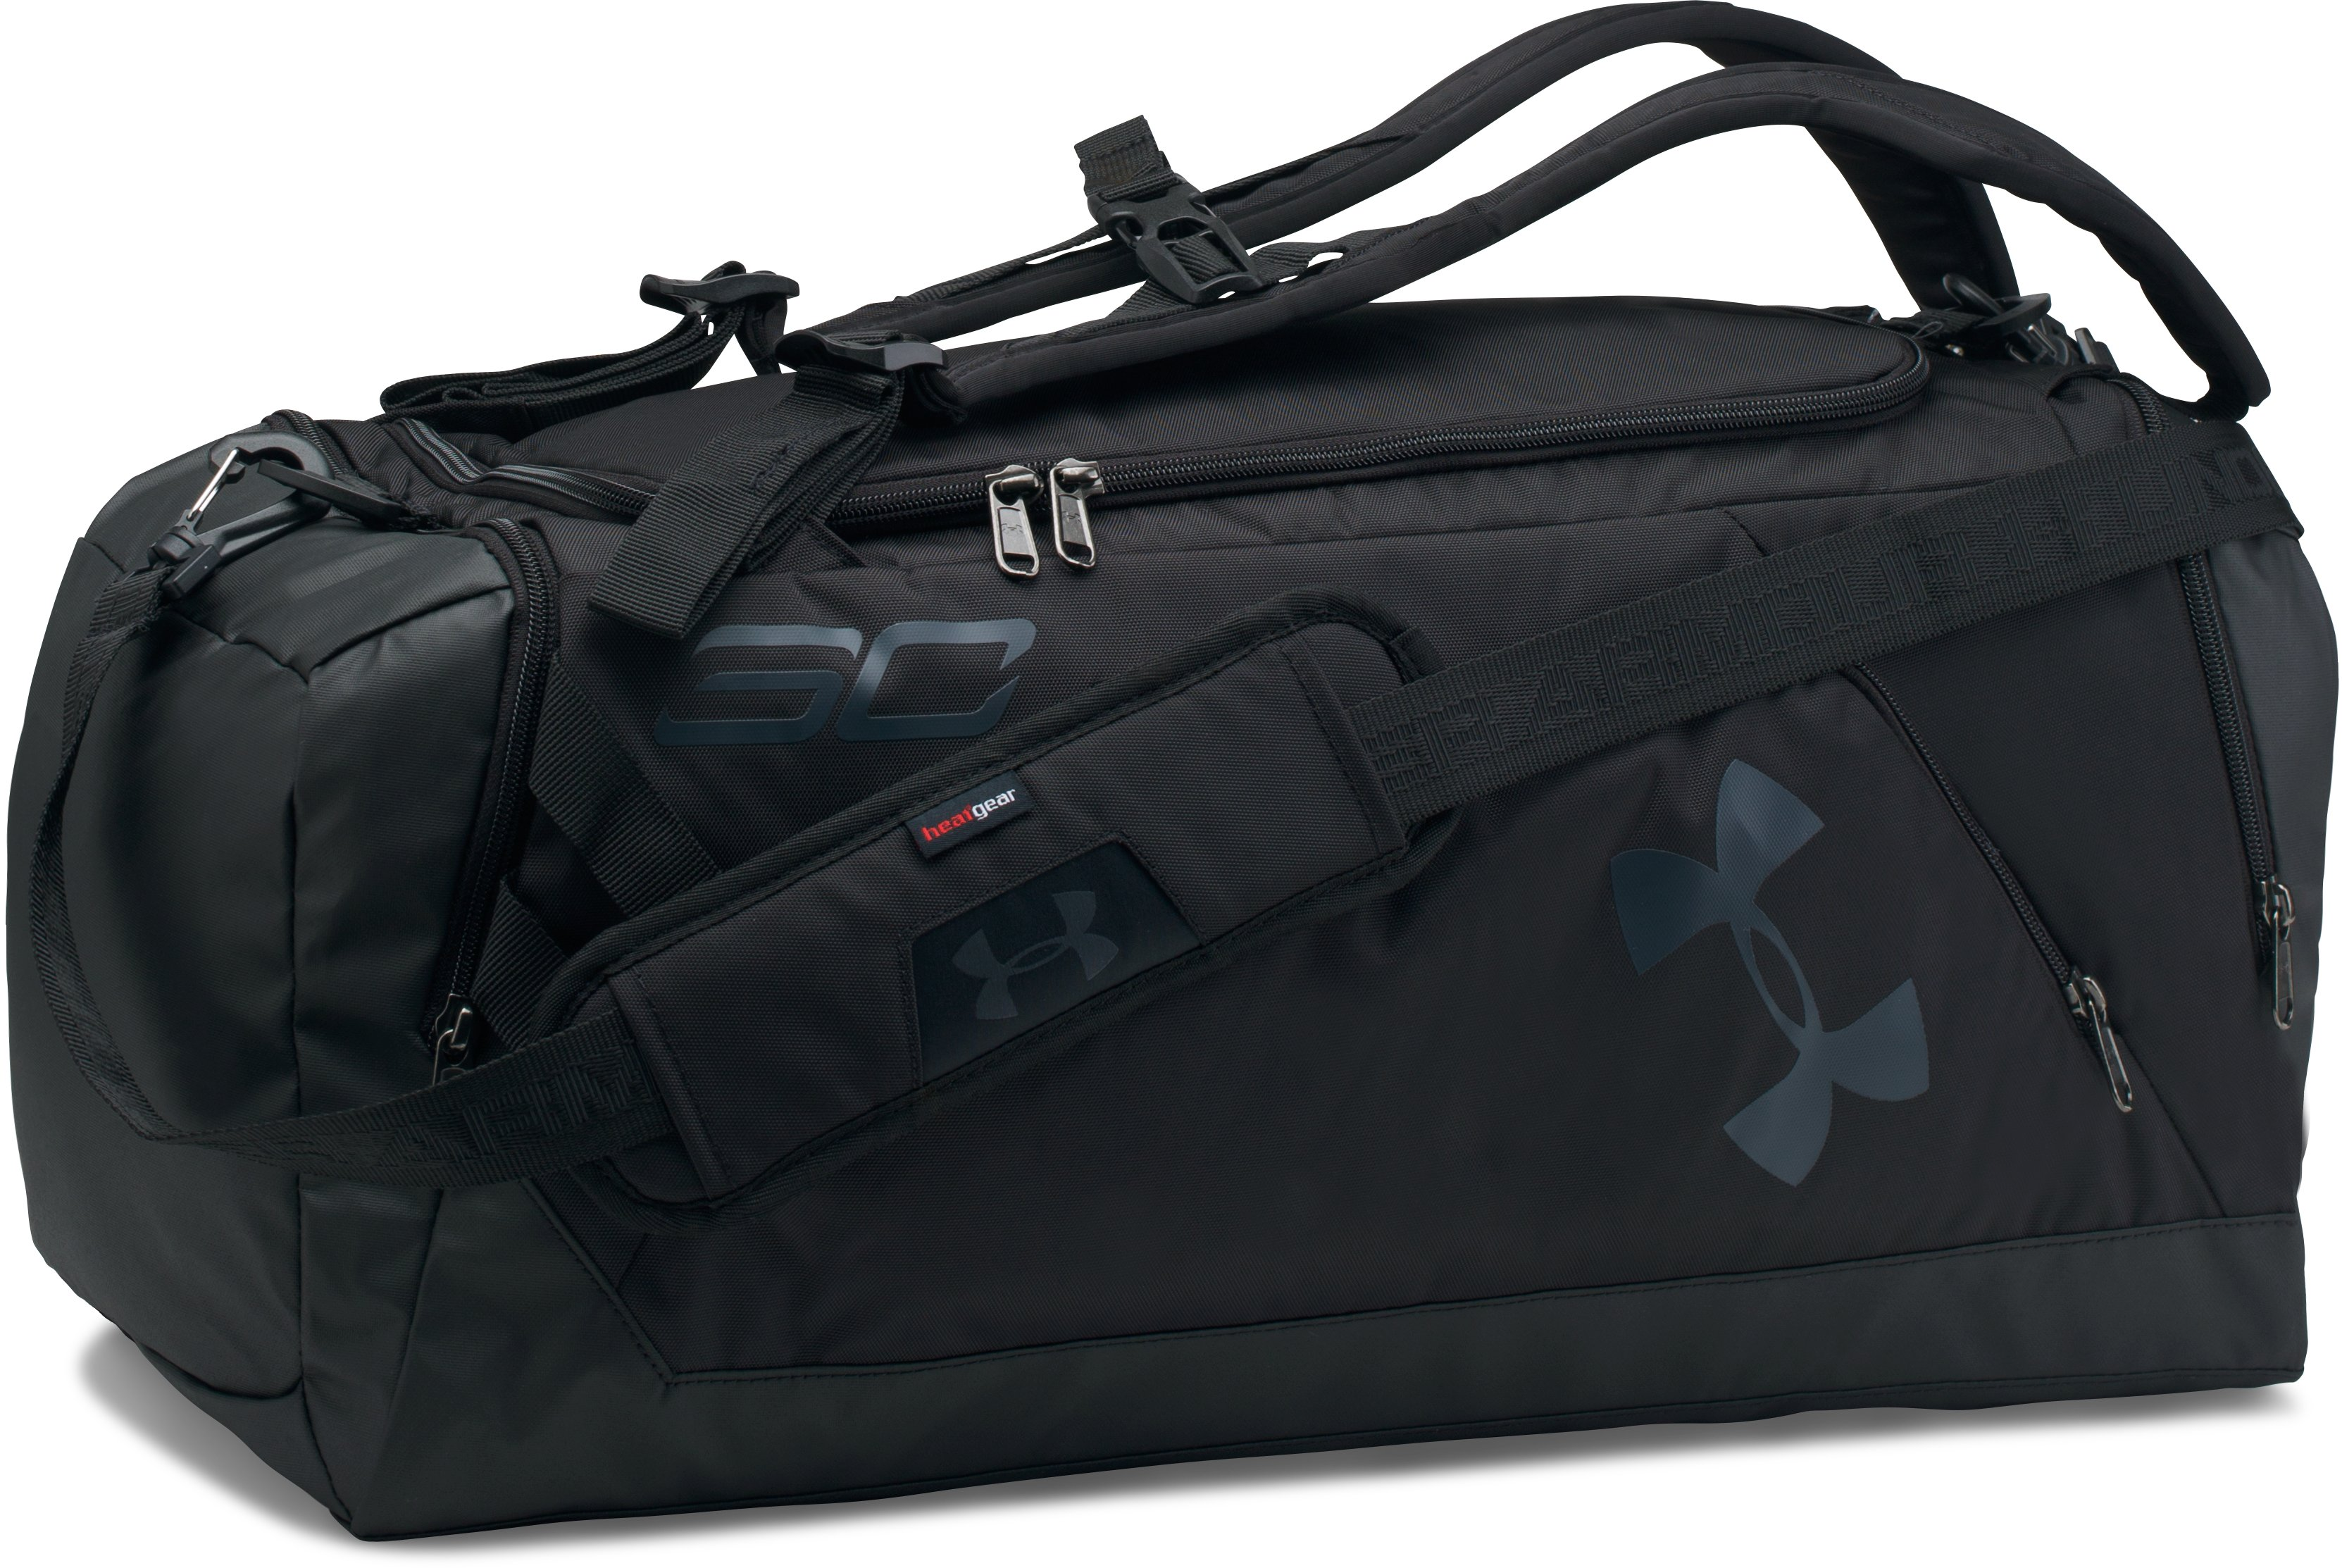 SC30 Storm Contain Duffle, Black